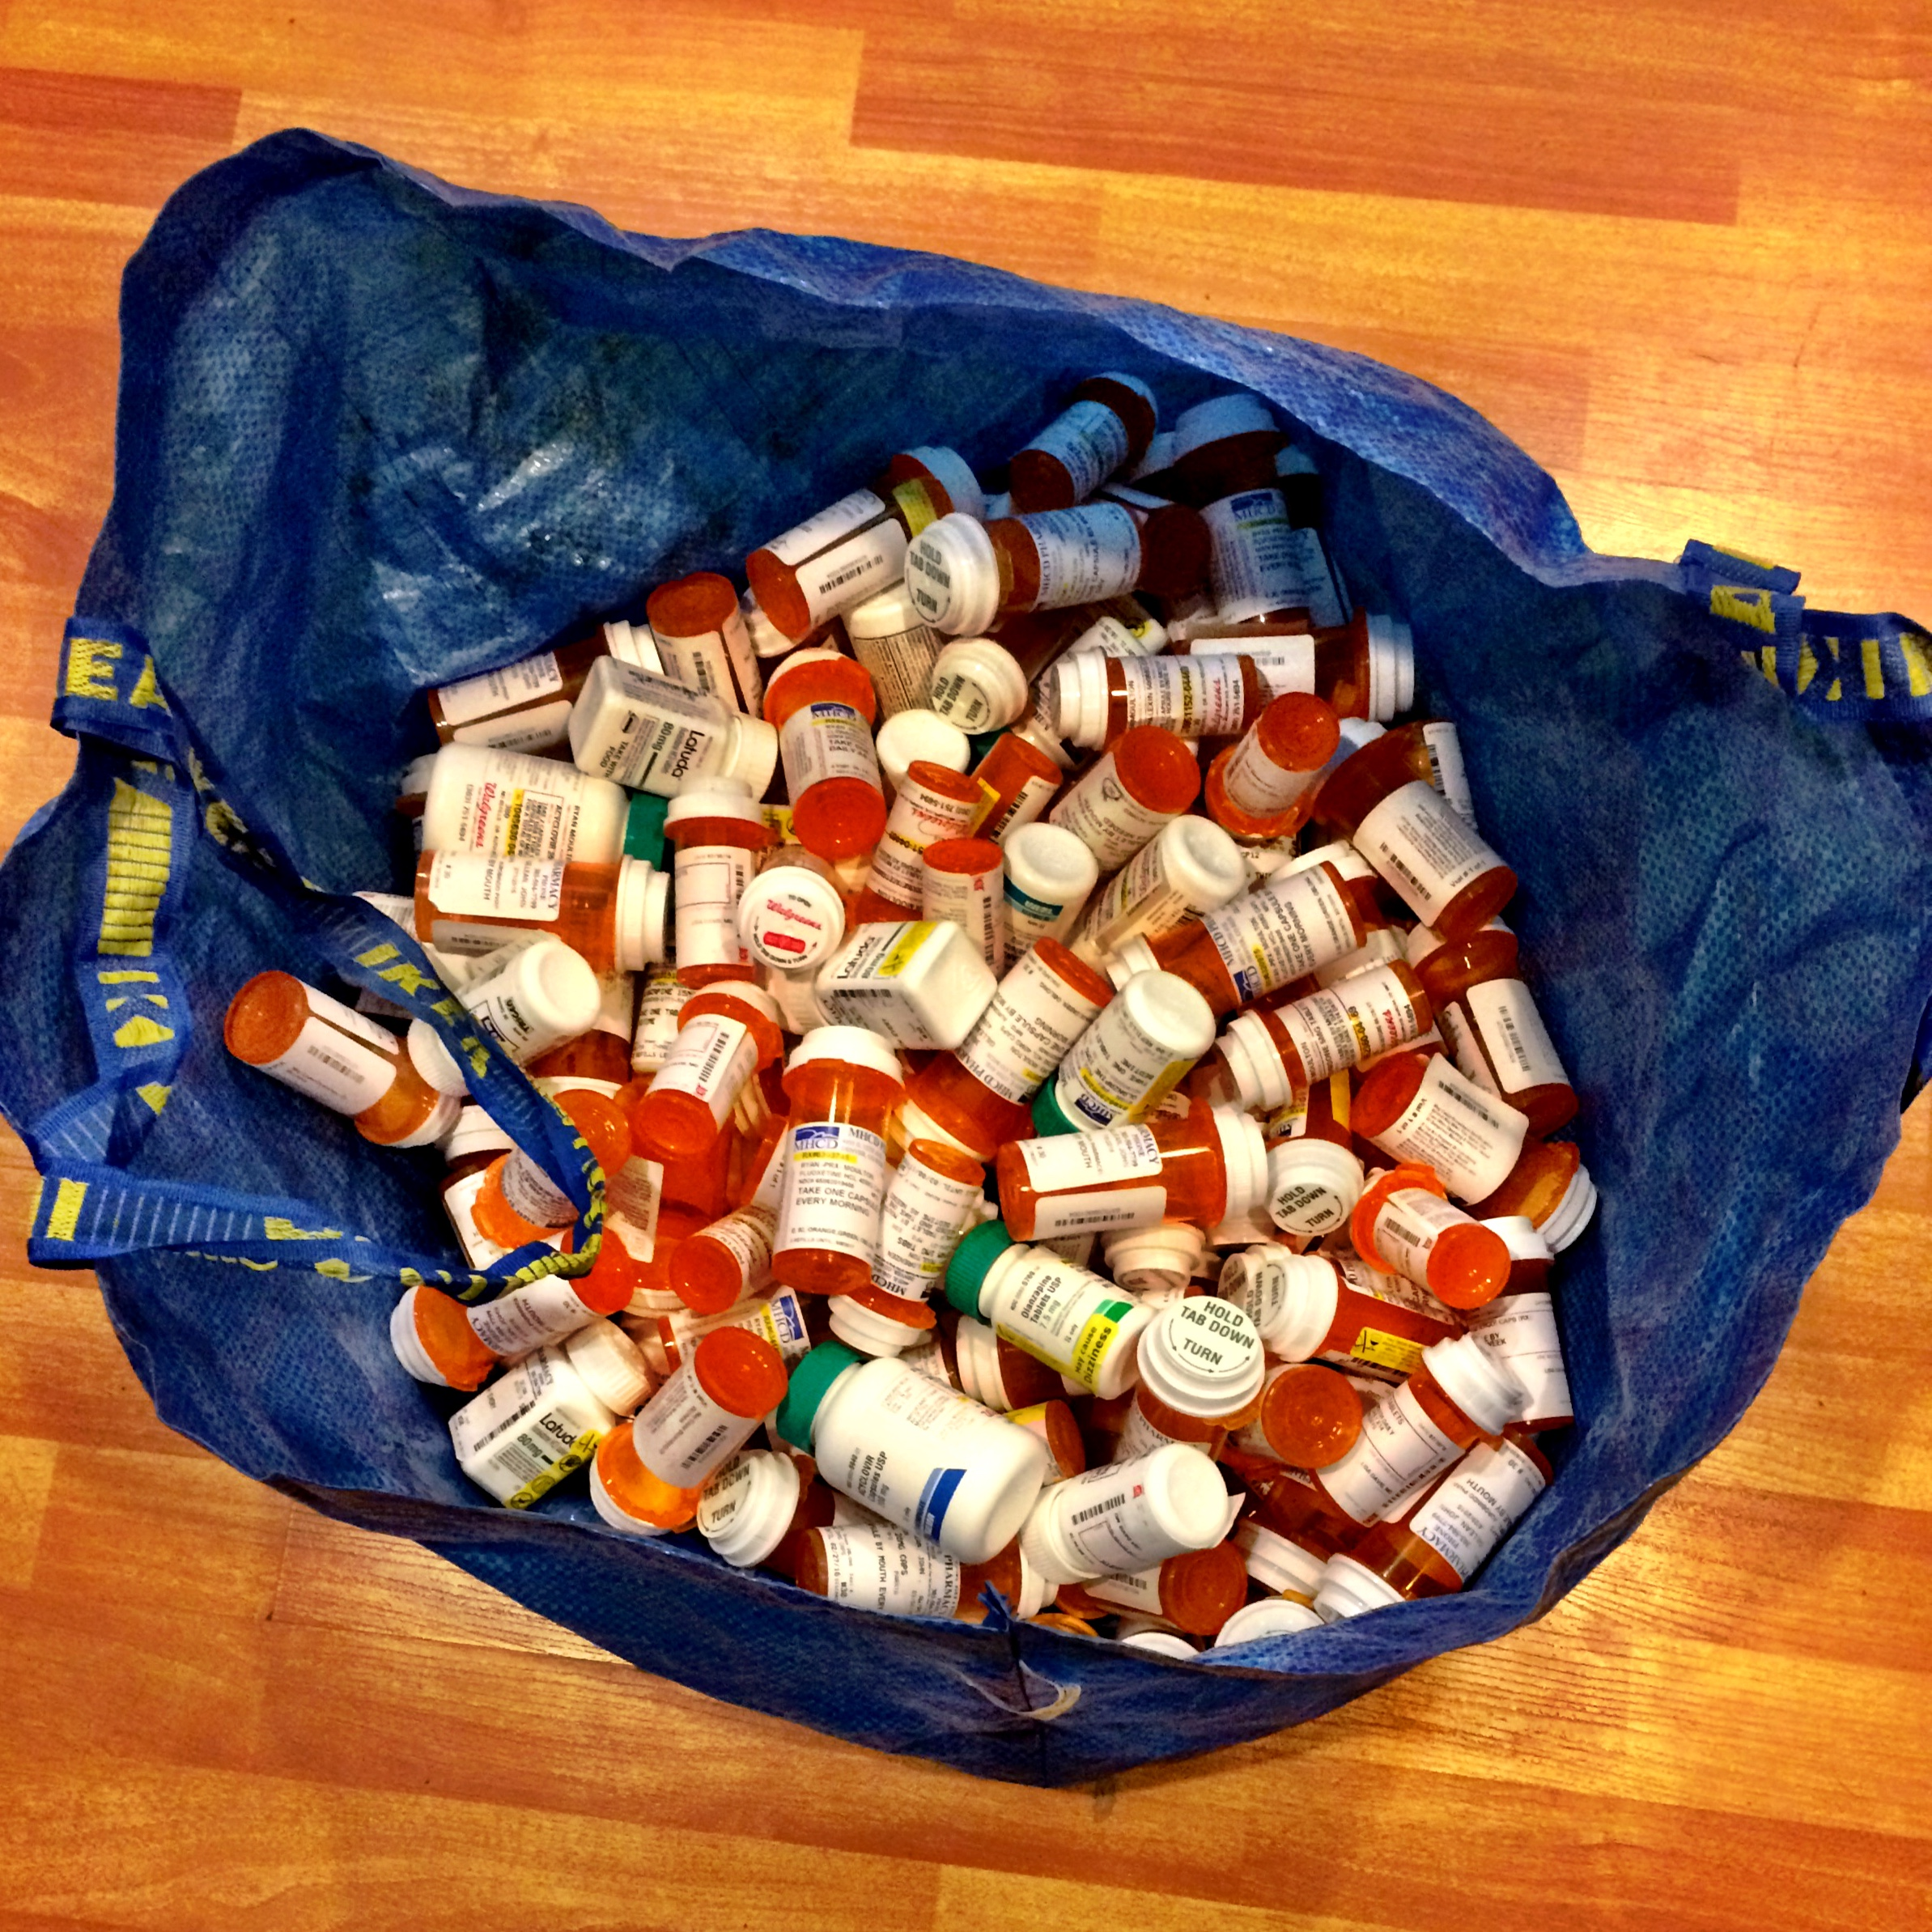 I don't know why, but I have kept all of the medication bottles since I started psychiatric care. This picture was taken in Oct 2016. This is a standard blue Ikea bag, and it is now reaching full.